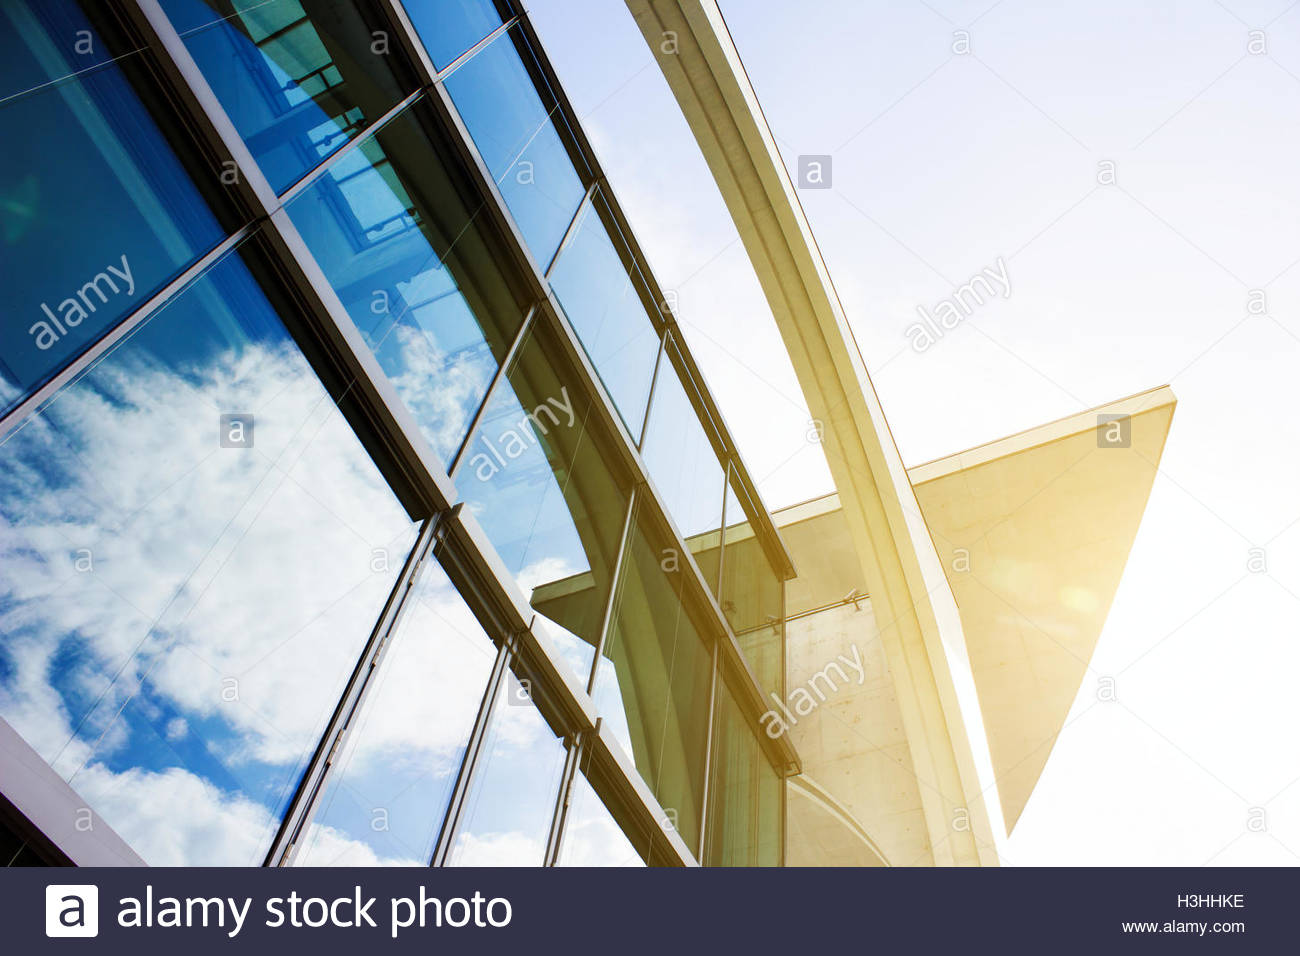 Exterior view glass facade, futuristic background, abstract architecture, bright glass building abstract geometric - Stock Image